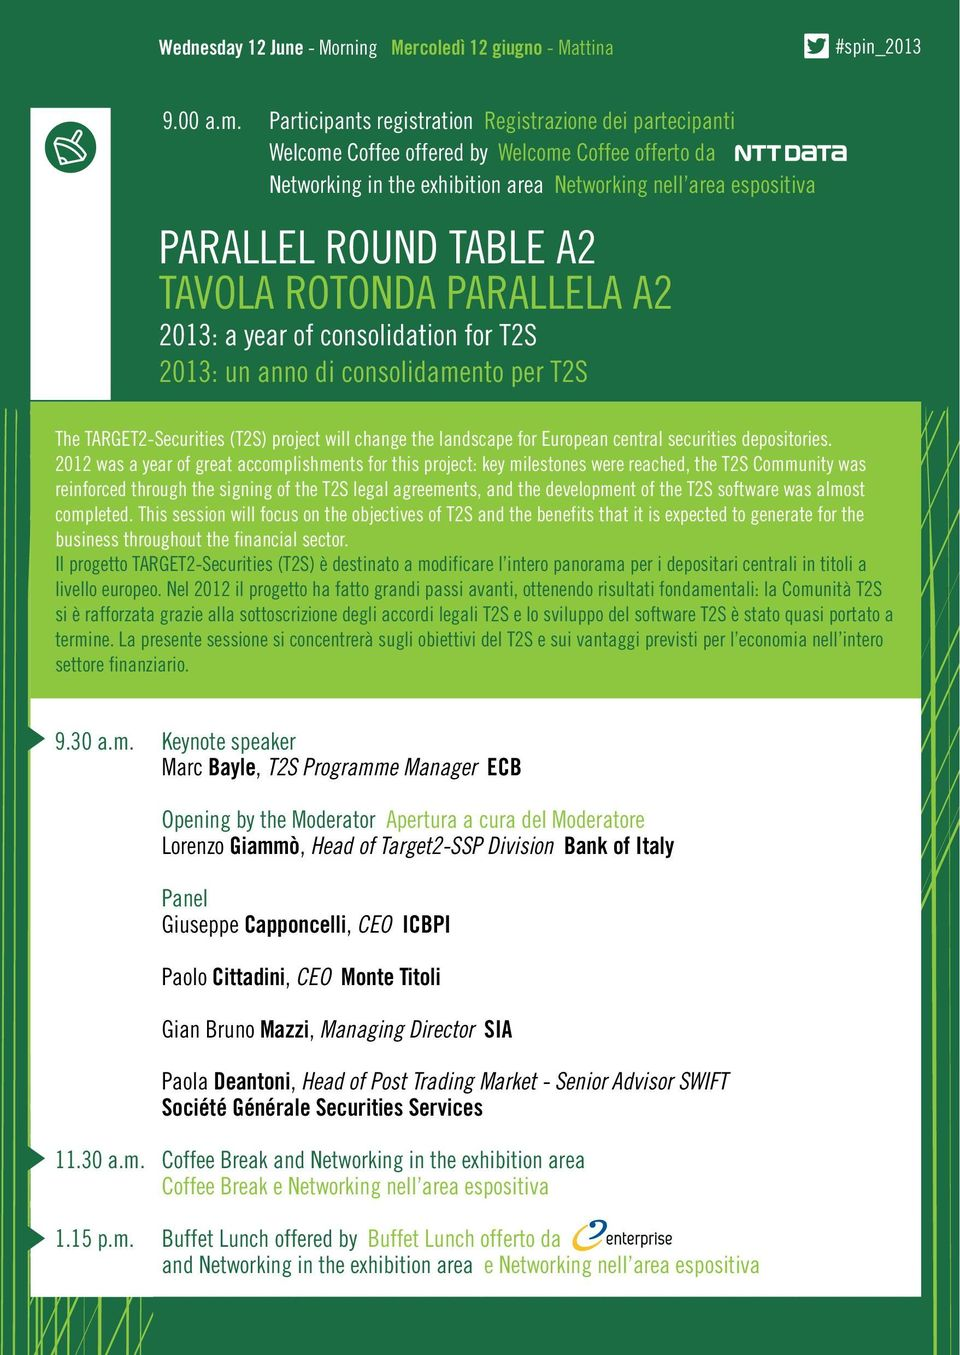 TAVOLA ROTONDA PARALLELA A2 2013: a year of consolidation for T2S 2013: un anno di consolidamento per T2S The TARGET2-Securities (T2S) project will change the landscape for European central